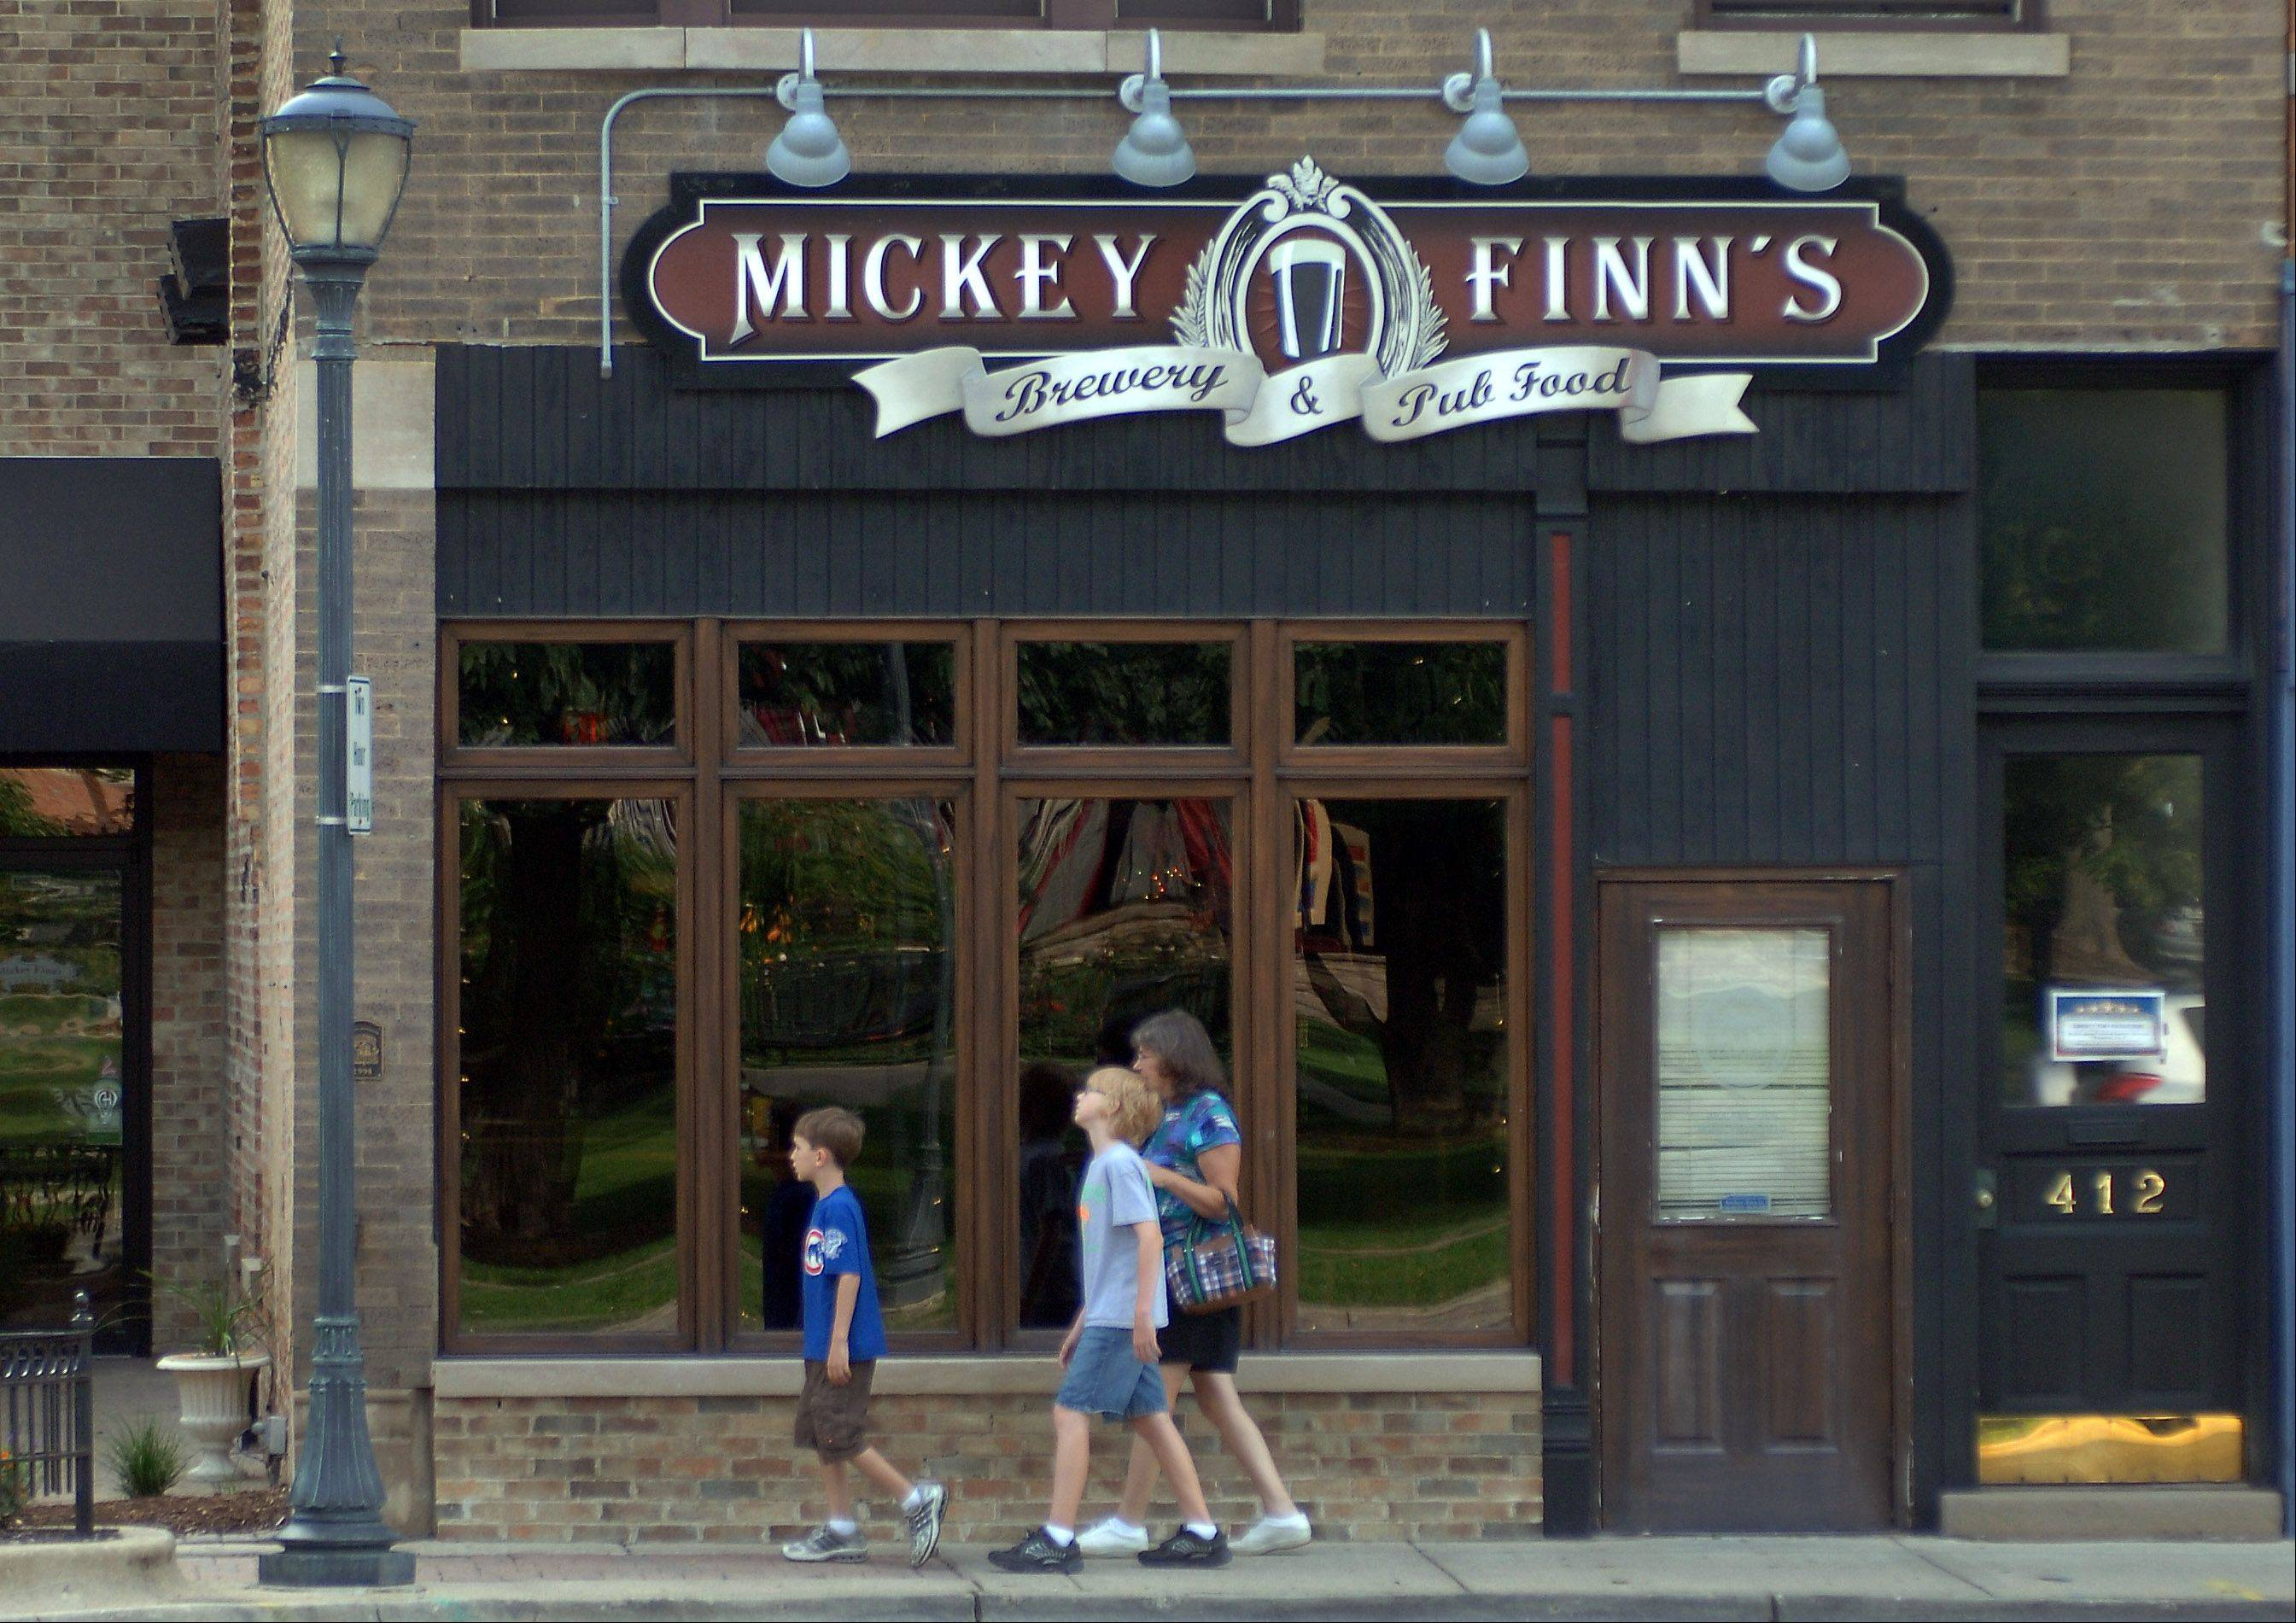 The popular Mickey Finn's restaurant and brewery plans to relocate less than a block away from its current location on Milwaukee Avenue across from Cook Park in downtown Libertyville.